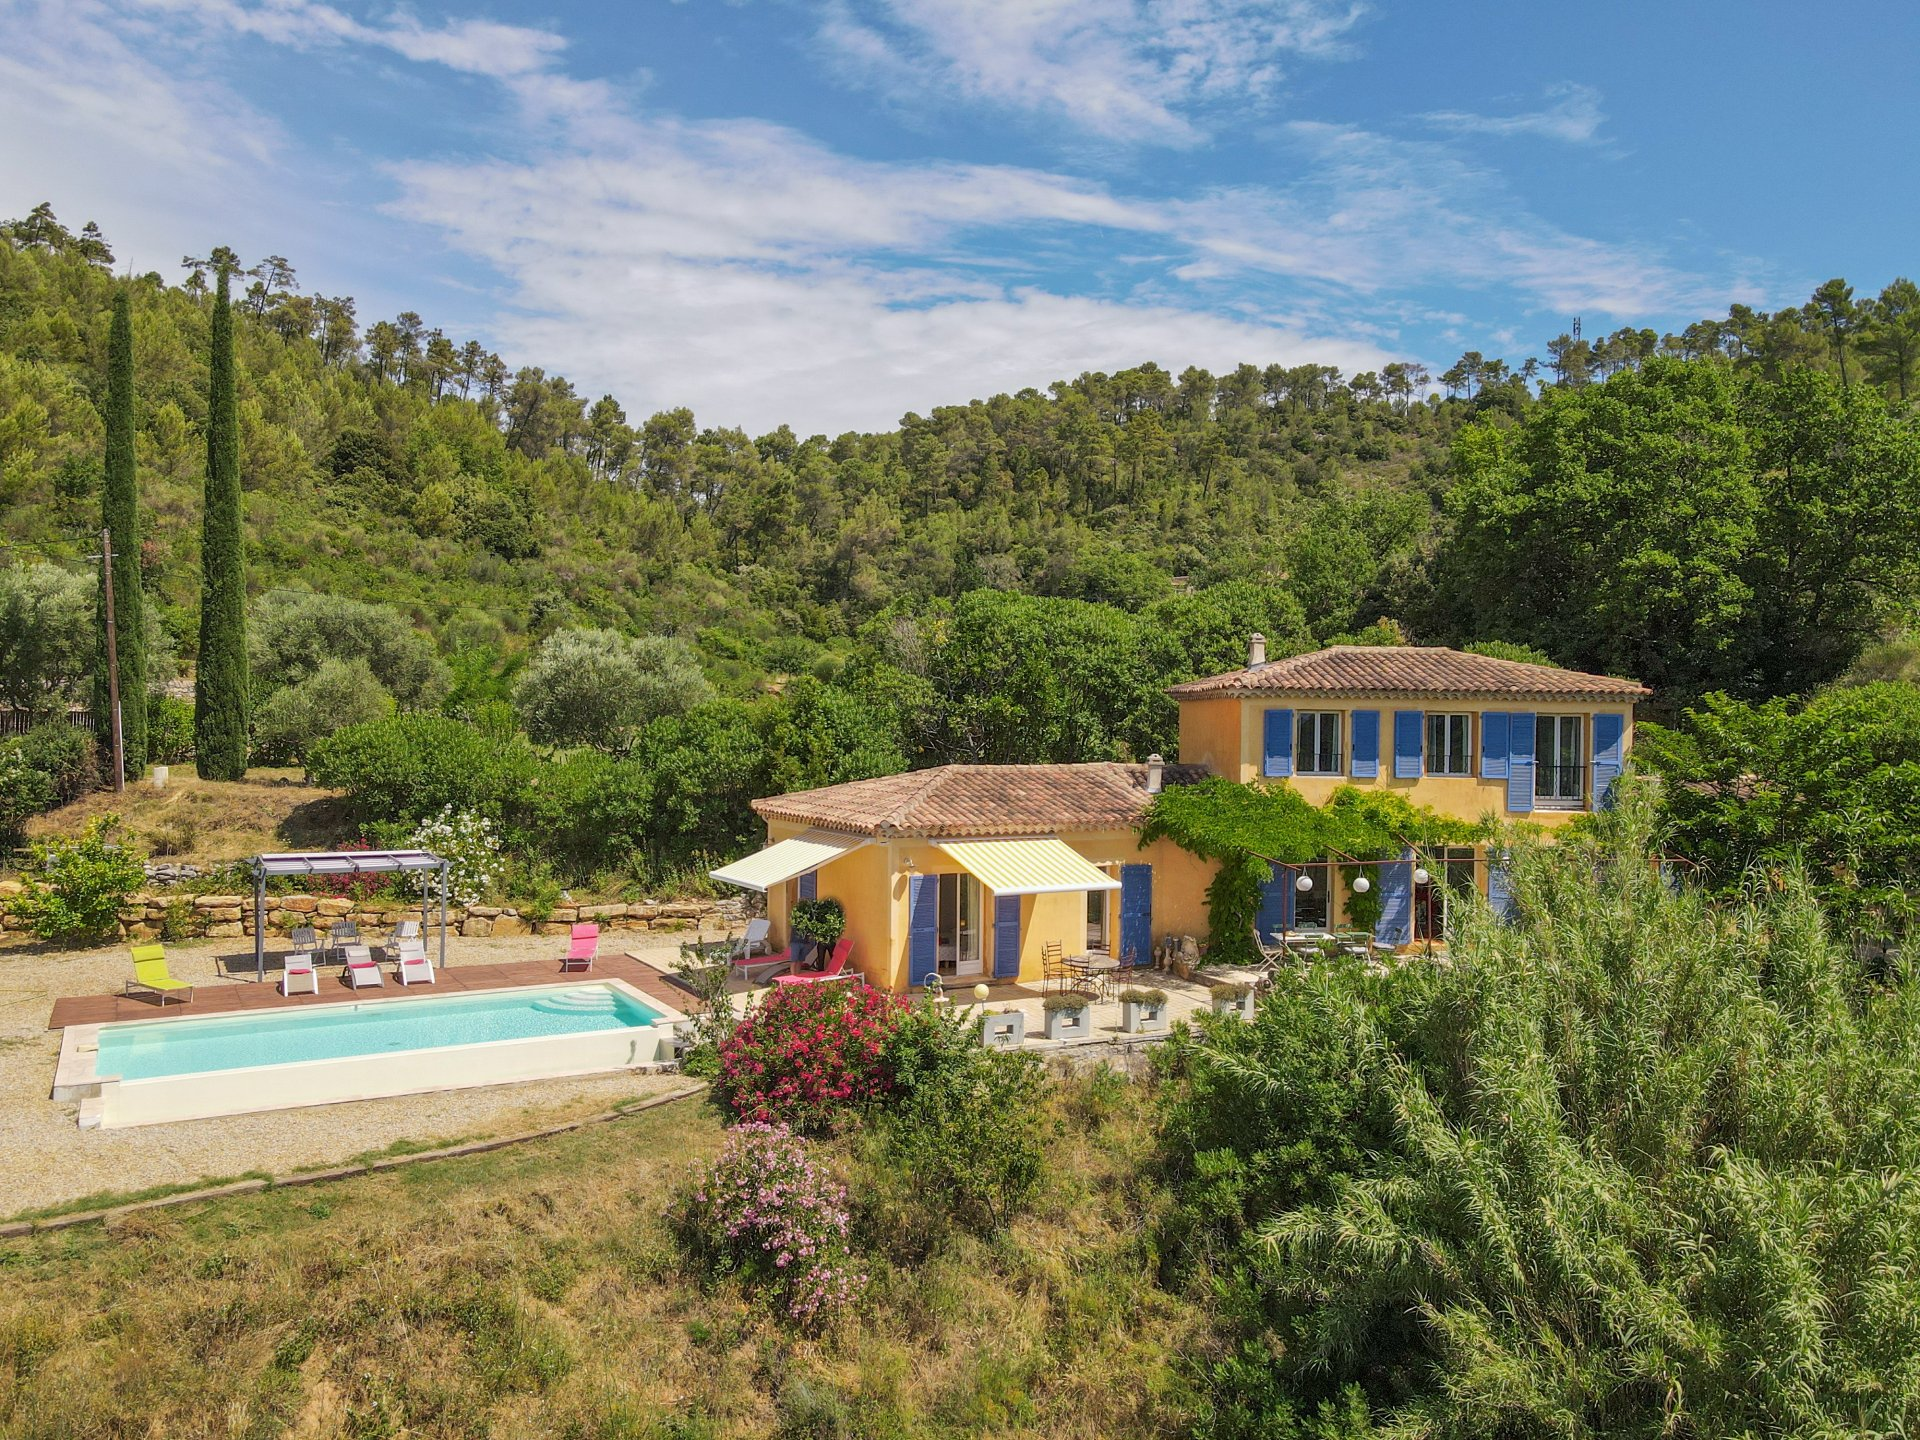 Beautiful Provencal villa with a stunning view in the hills of Cotignac (3 km)